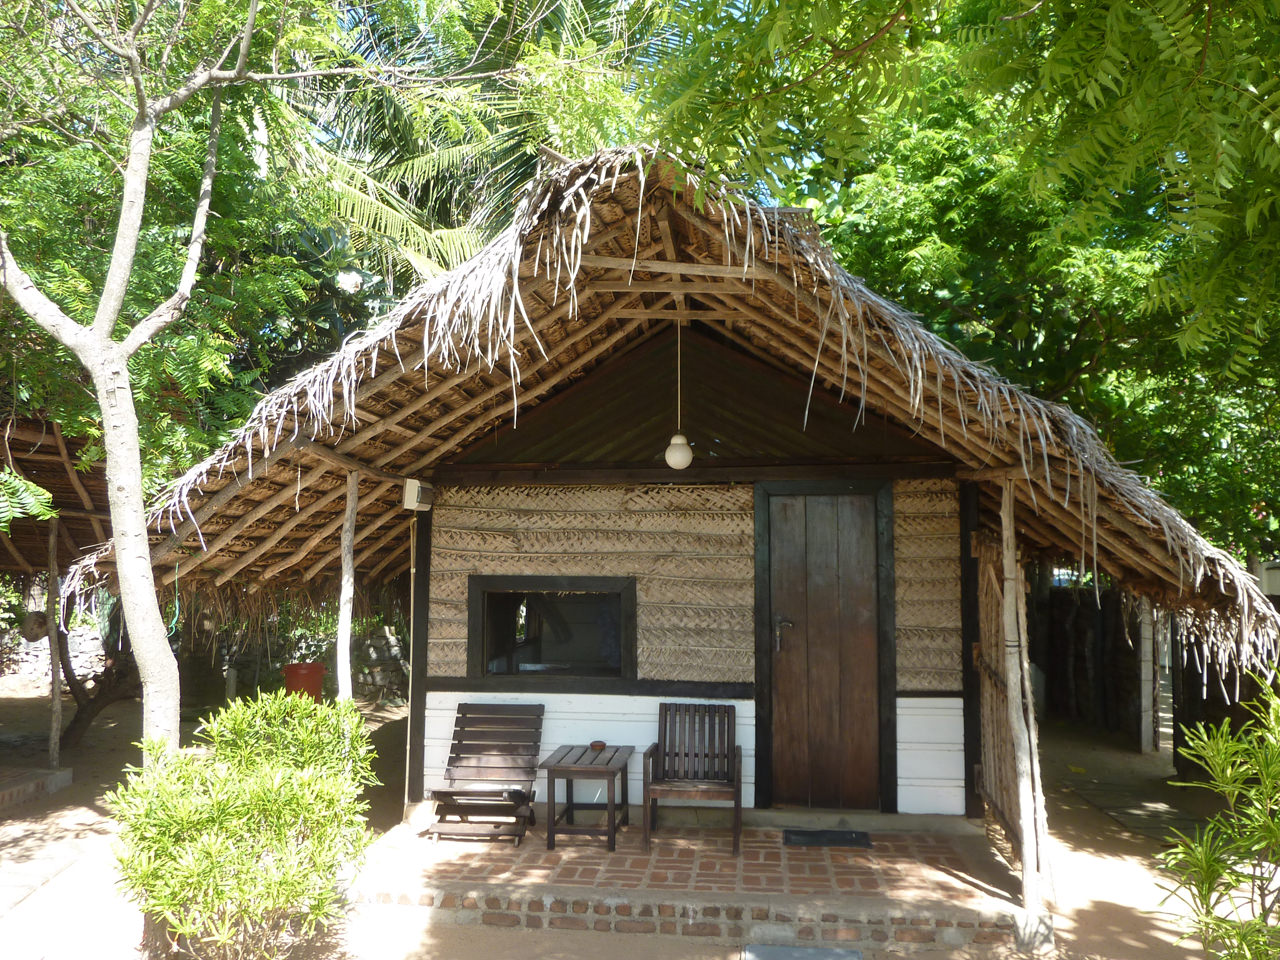 Exterior view of Beach Cabana in Arugam Bay